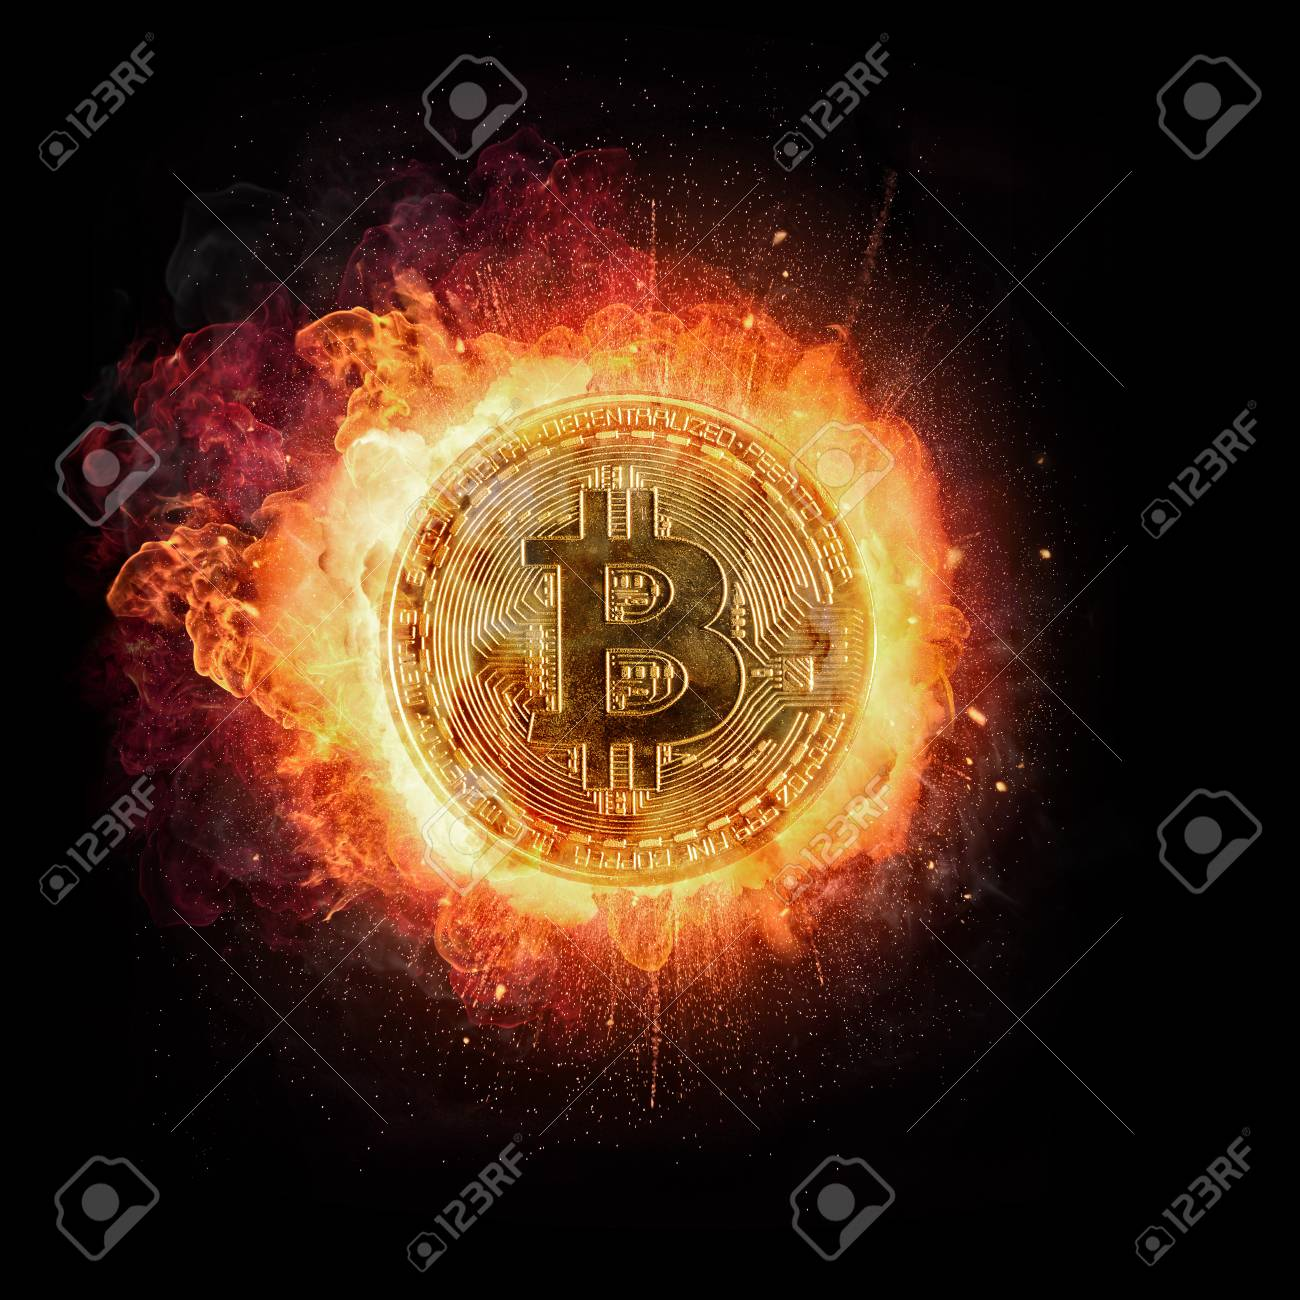 Burning Bitcoin Crypto Currency Symbol Isolated On Black Background